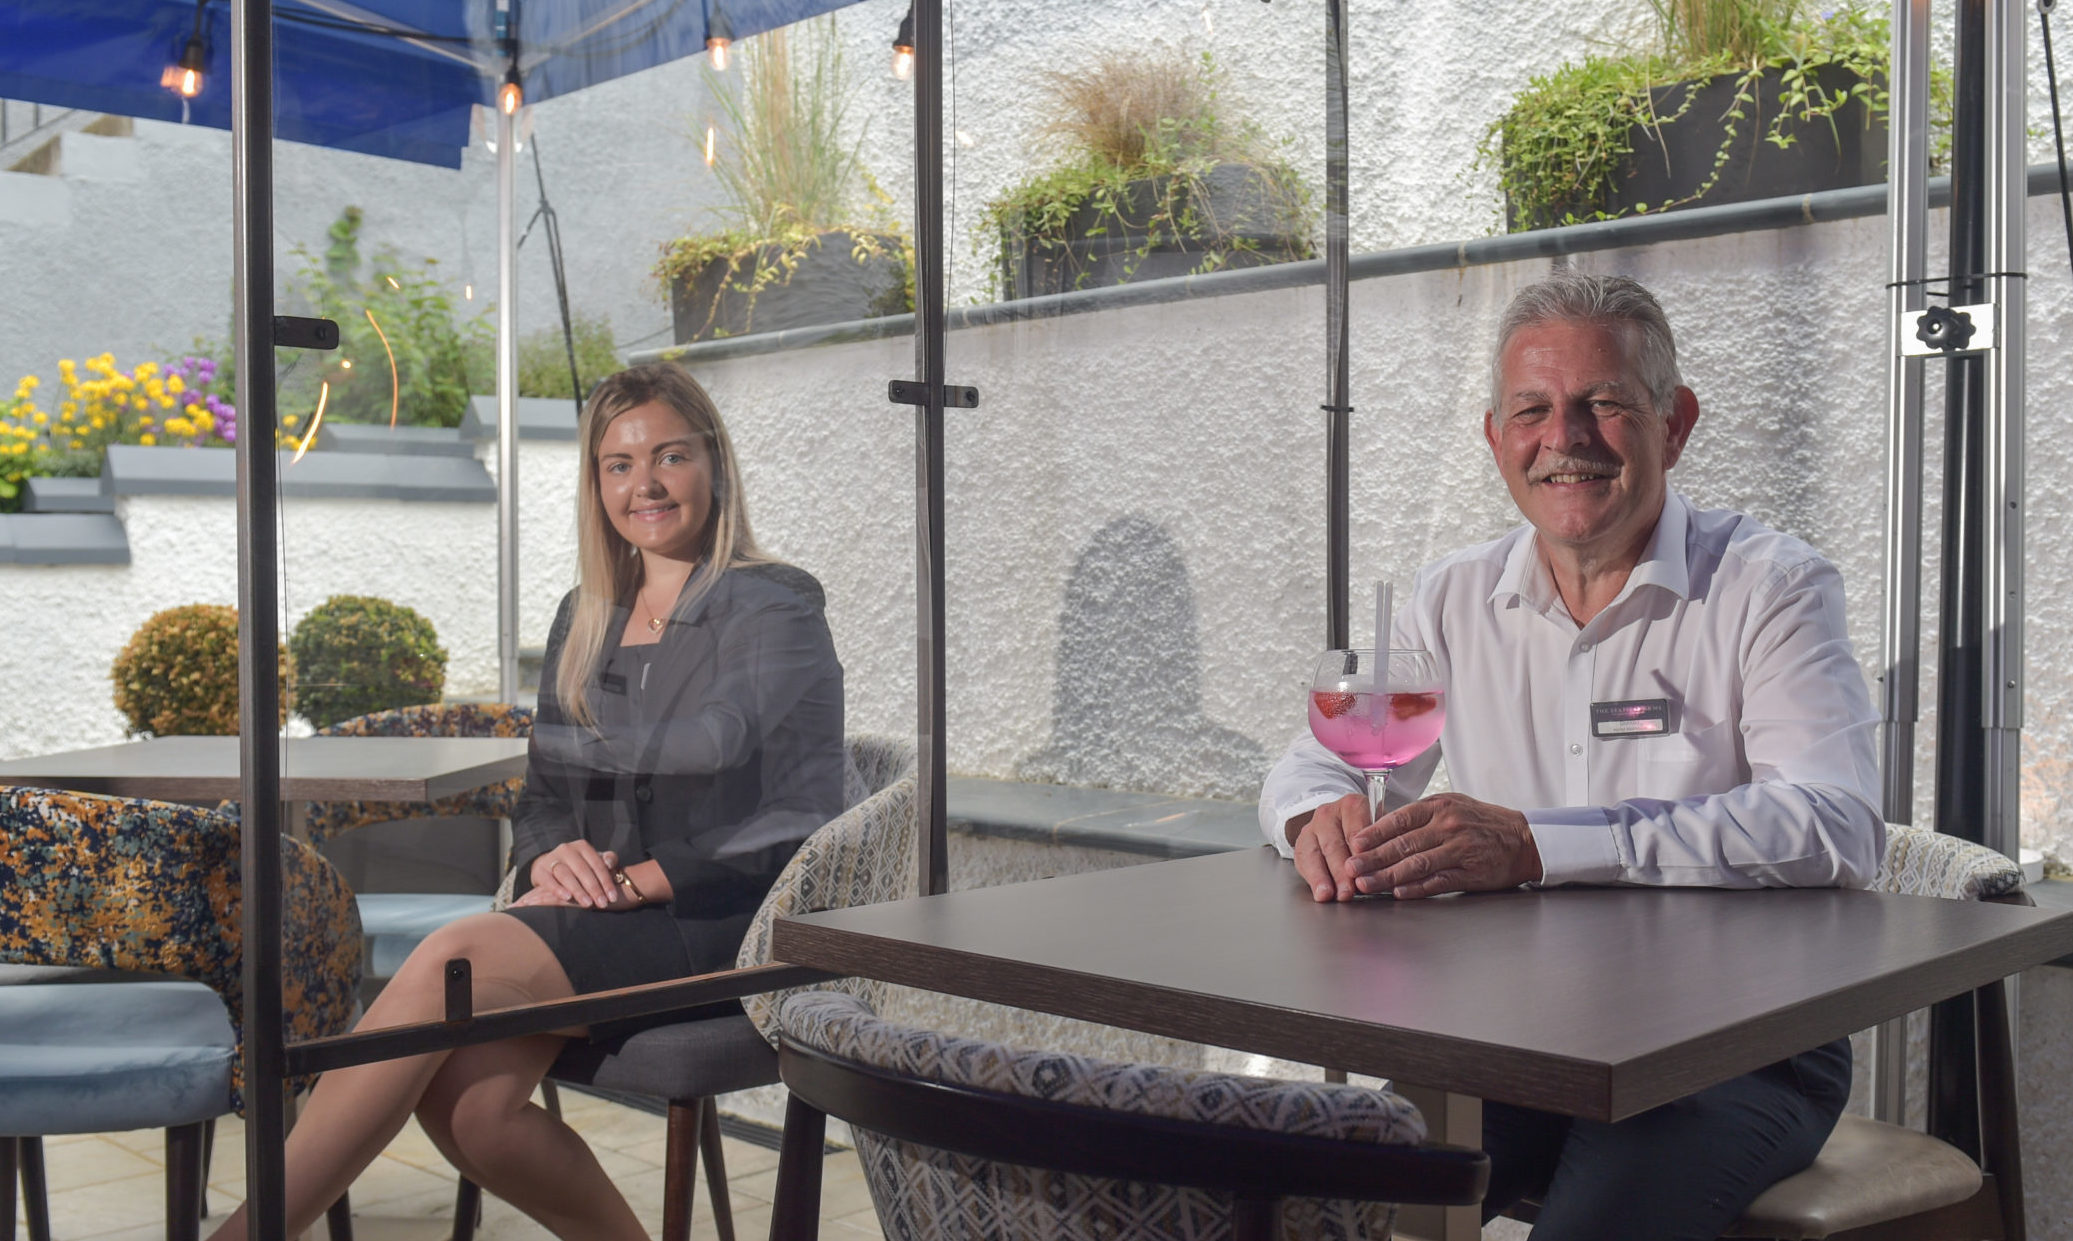 The Seafield Arms in Cullen has installed protective screens between tables for diners. Pictured: Manager Donald Thain, pictured right, and deputy manager Ailie Flett. Picture and video by Jason Hedges.